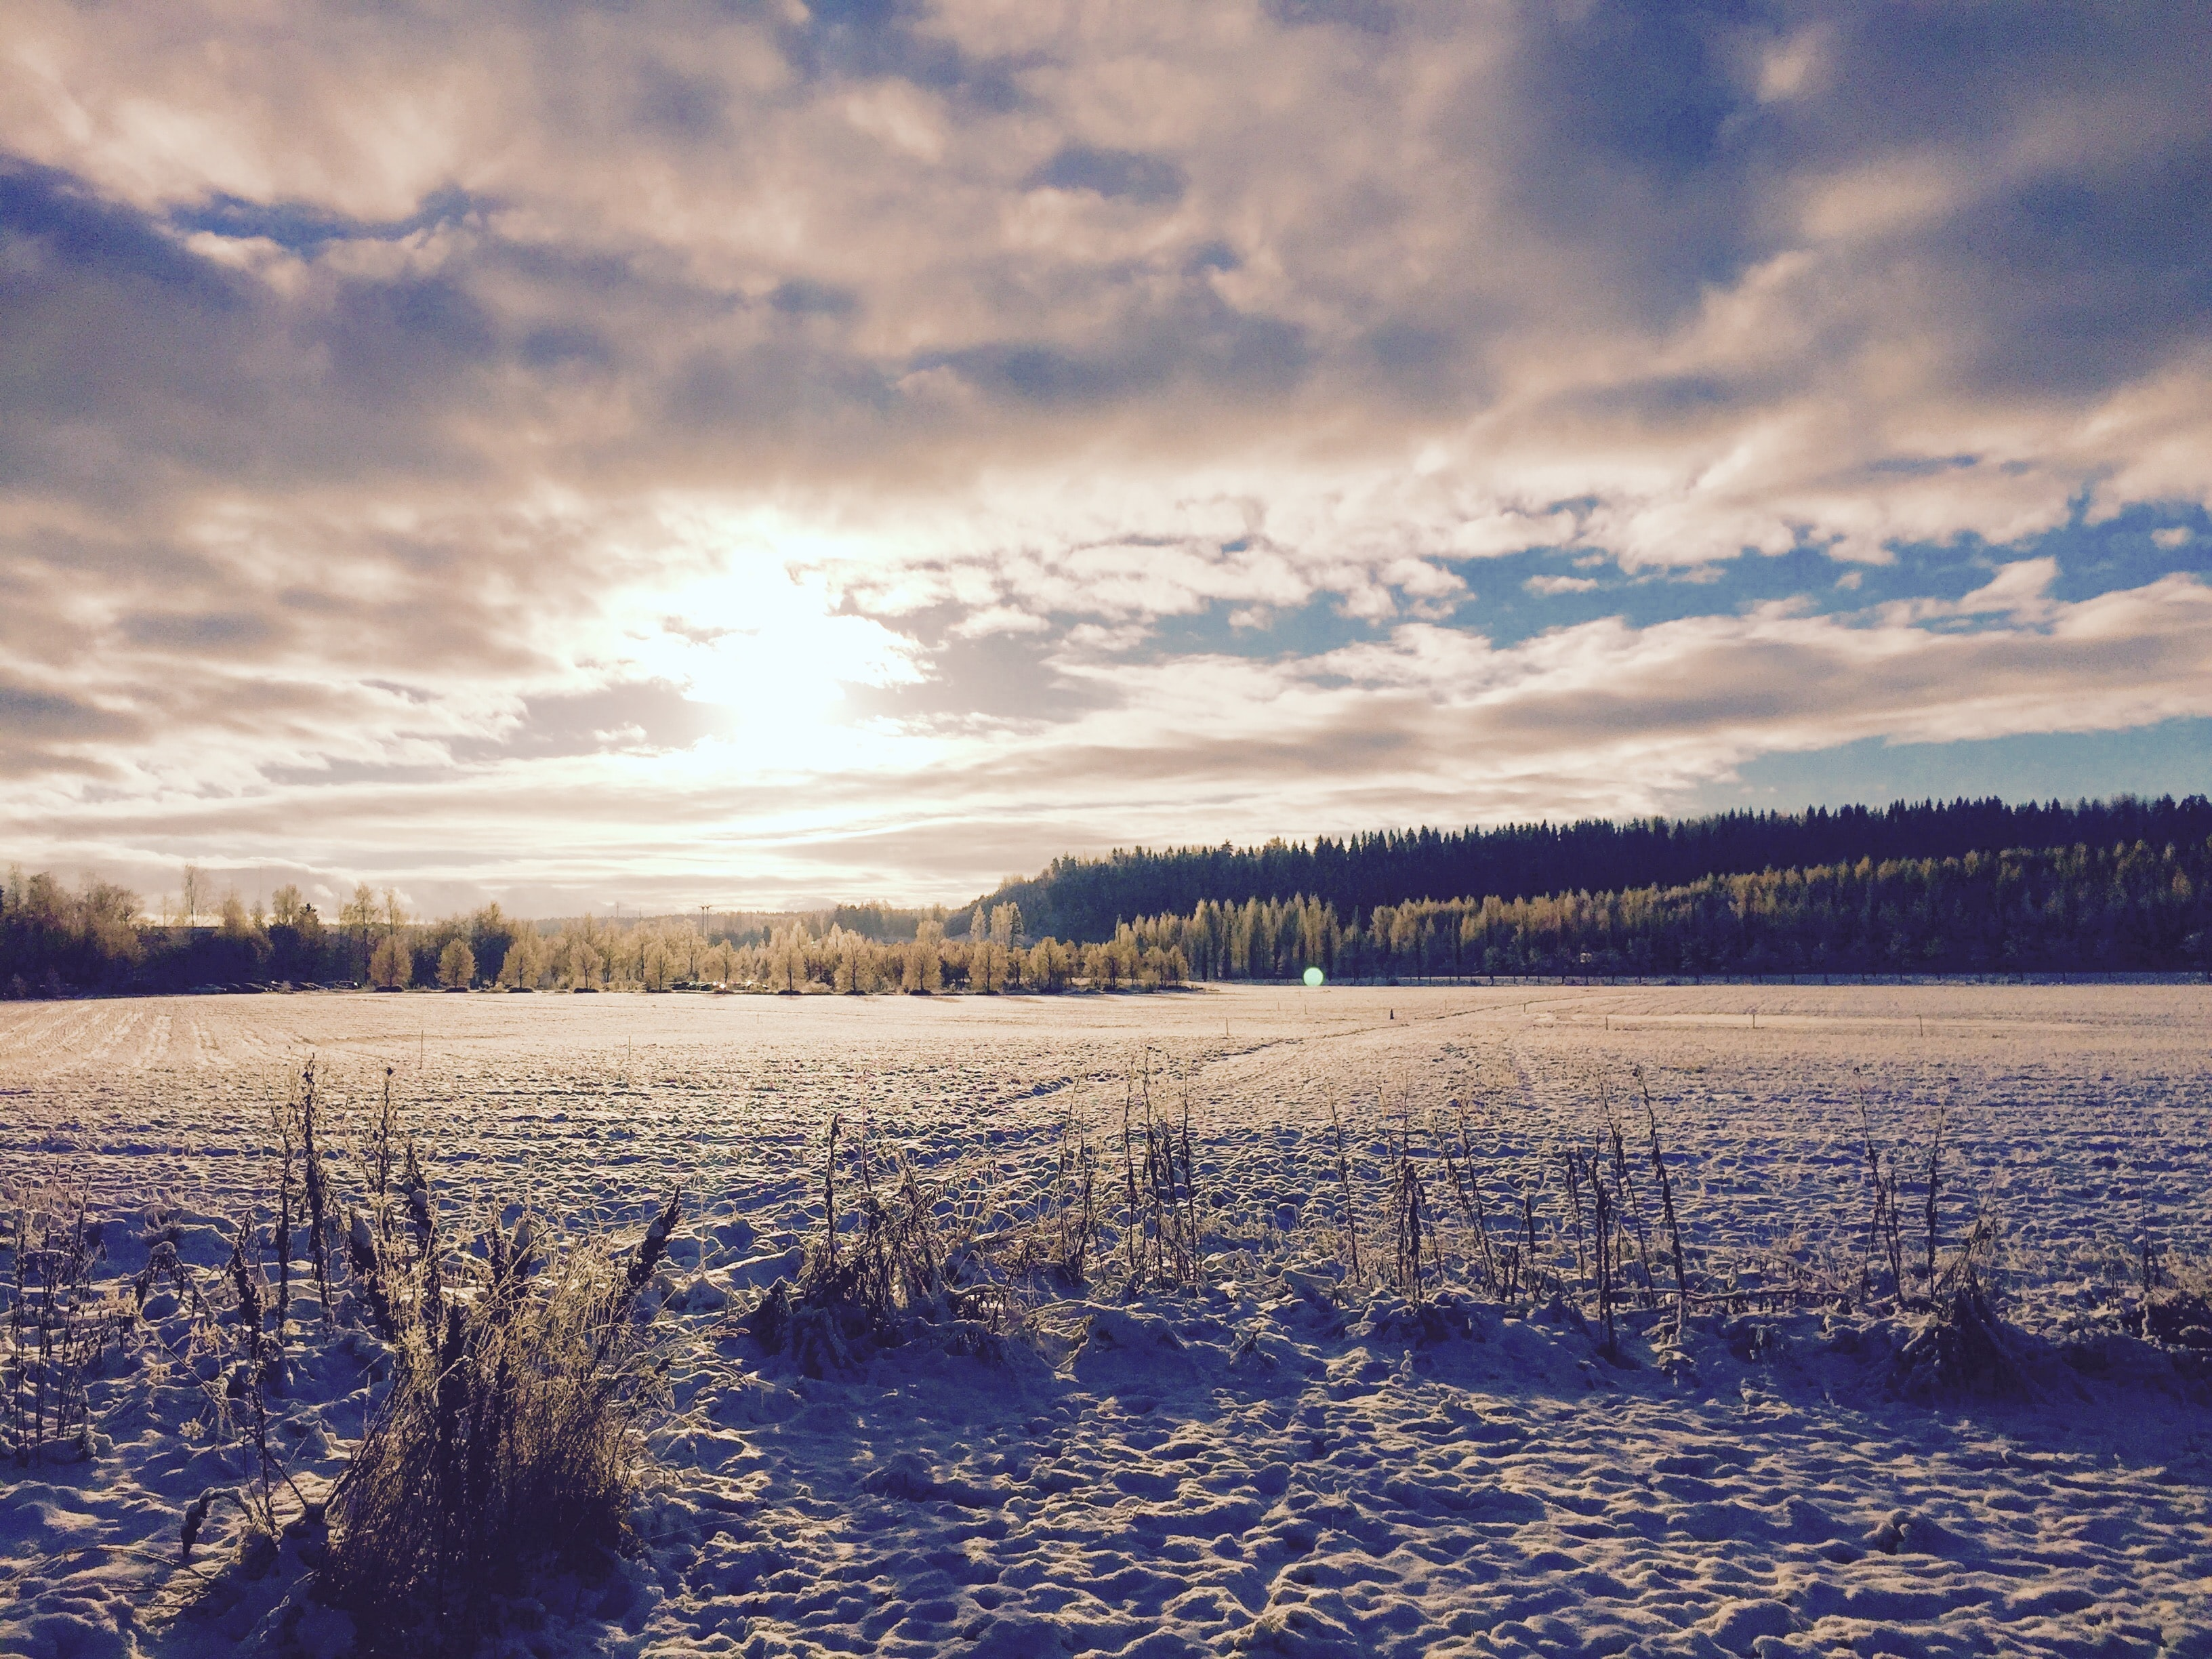 Snow covers the grass of a forest and clouds fill the sky during sunrise